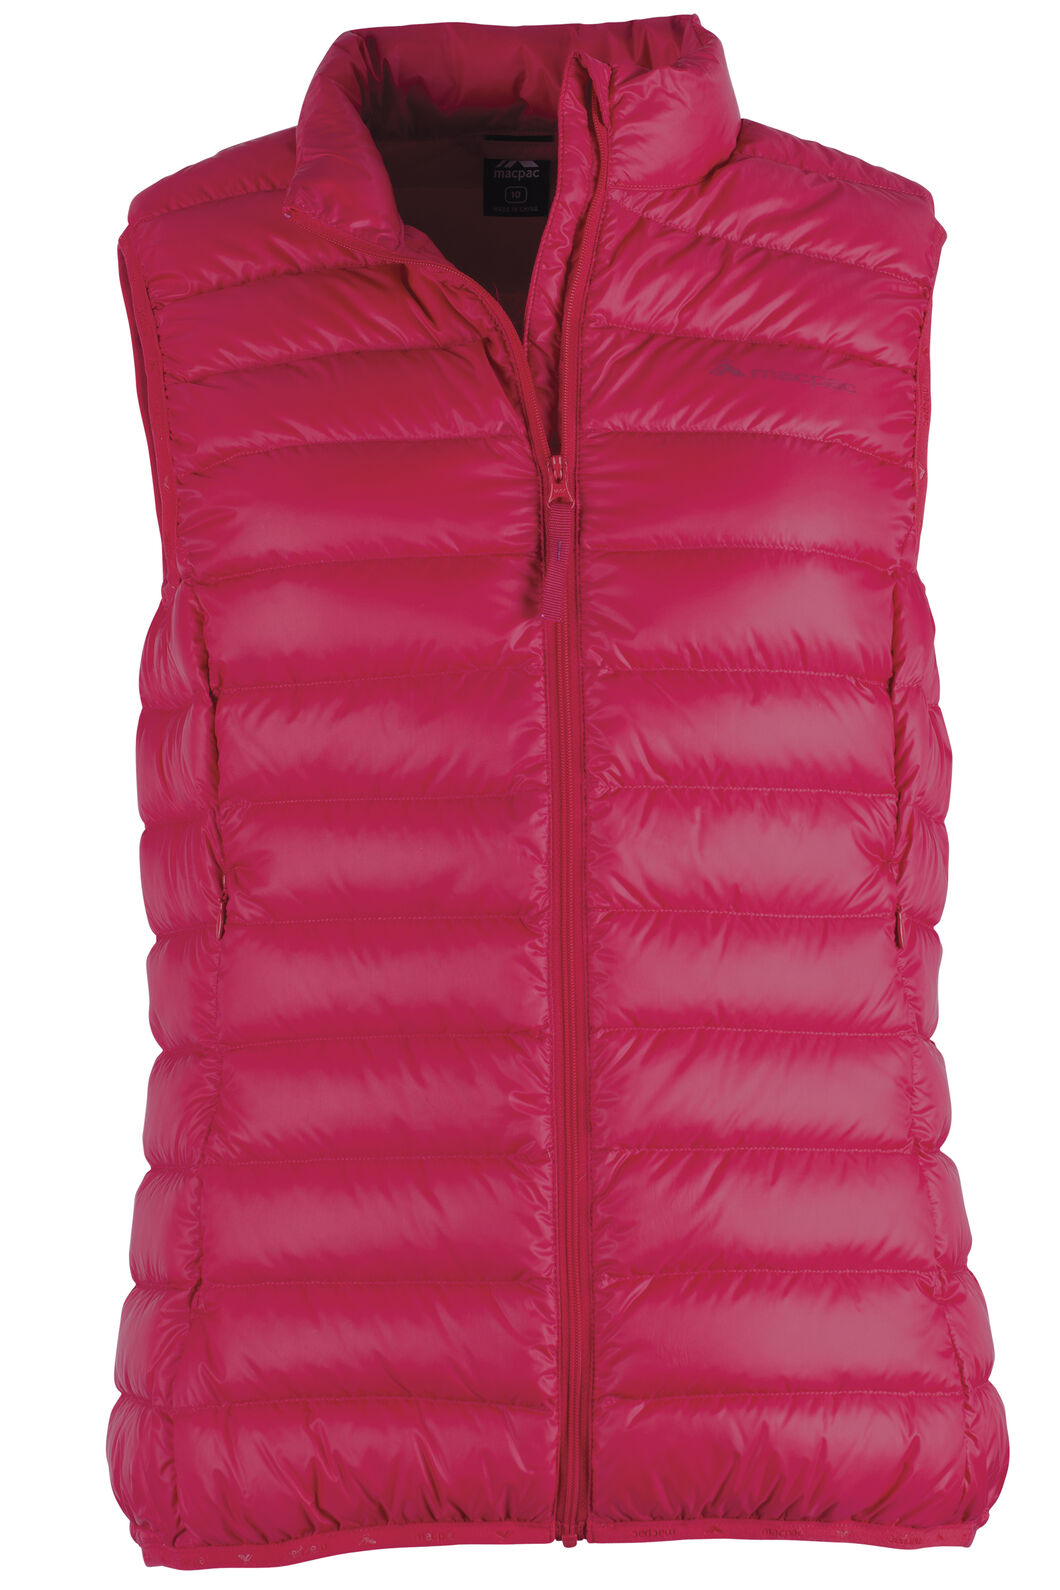 Macpac Uber Light Down Vest - Women's, Crimson, hi-res